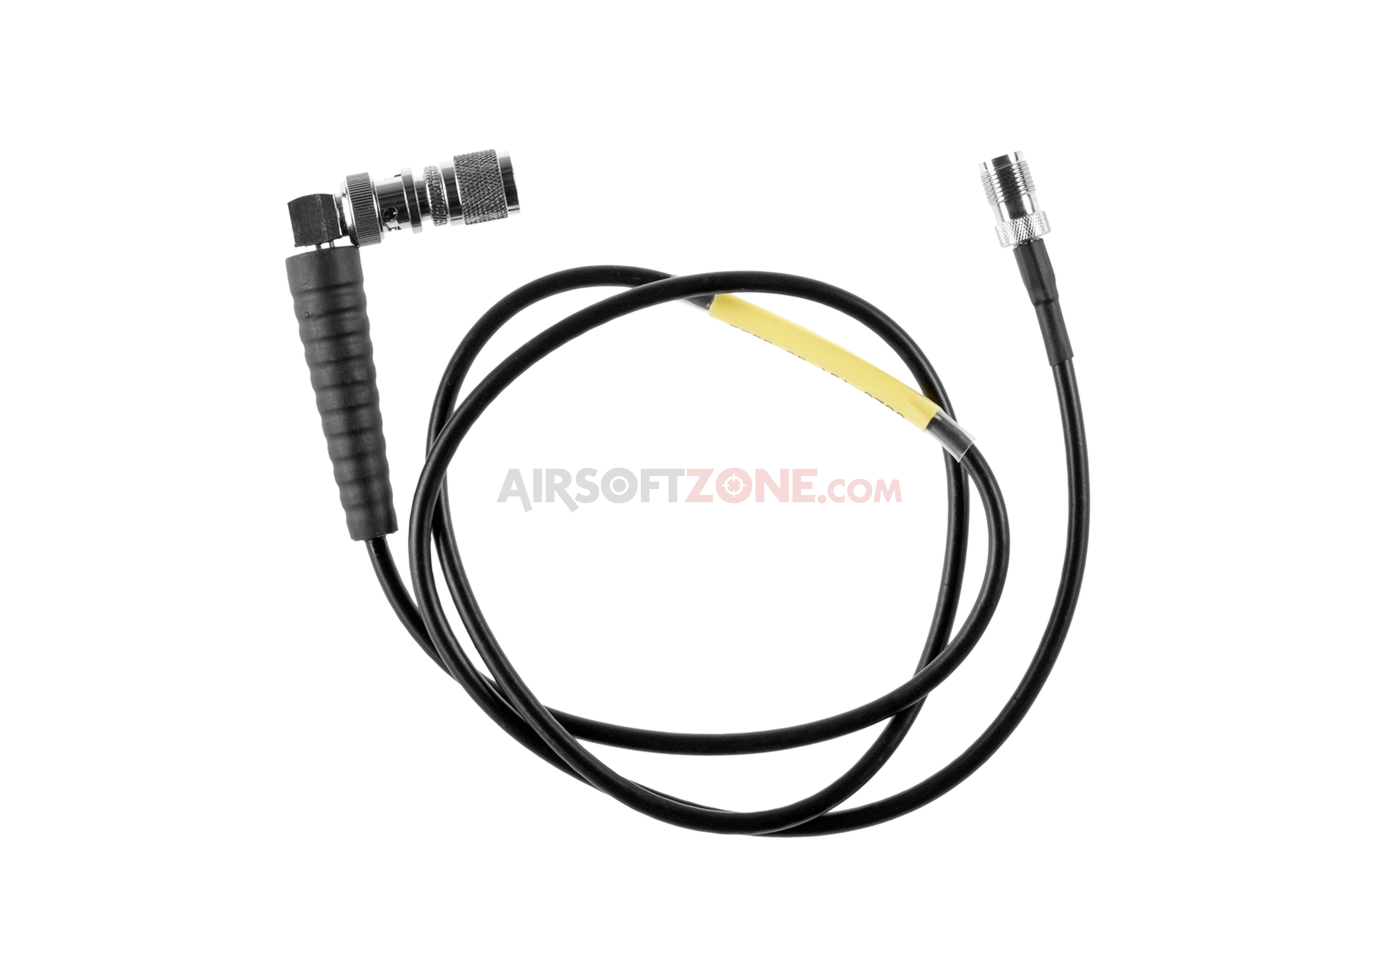 antenna extension cord  emerson  - accessories